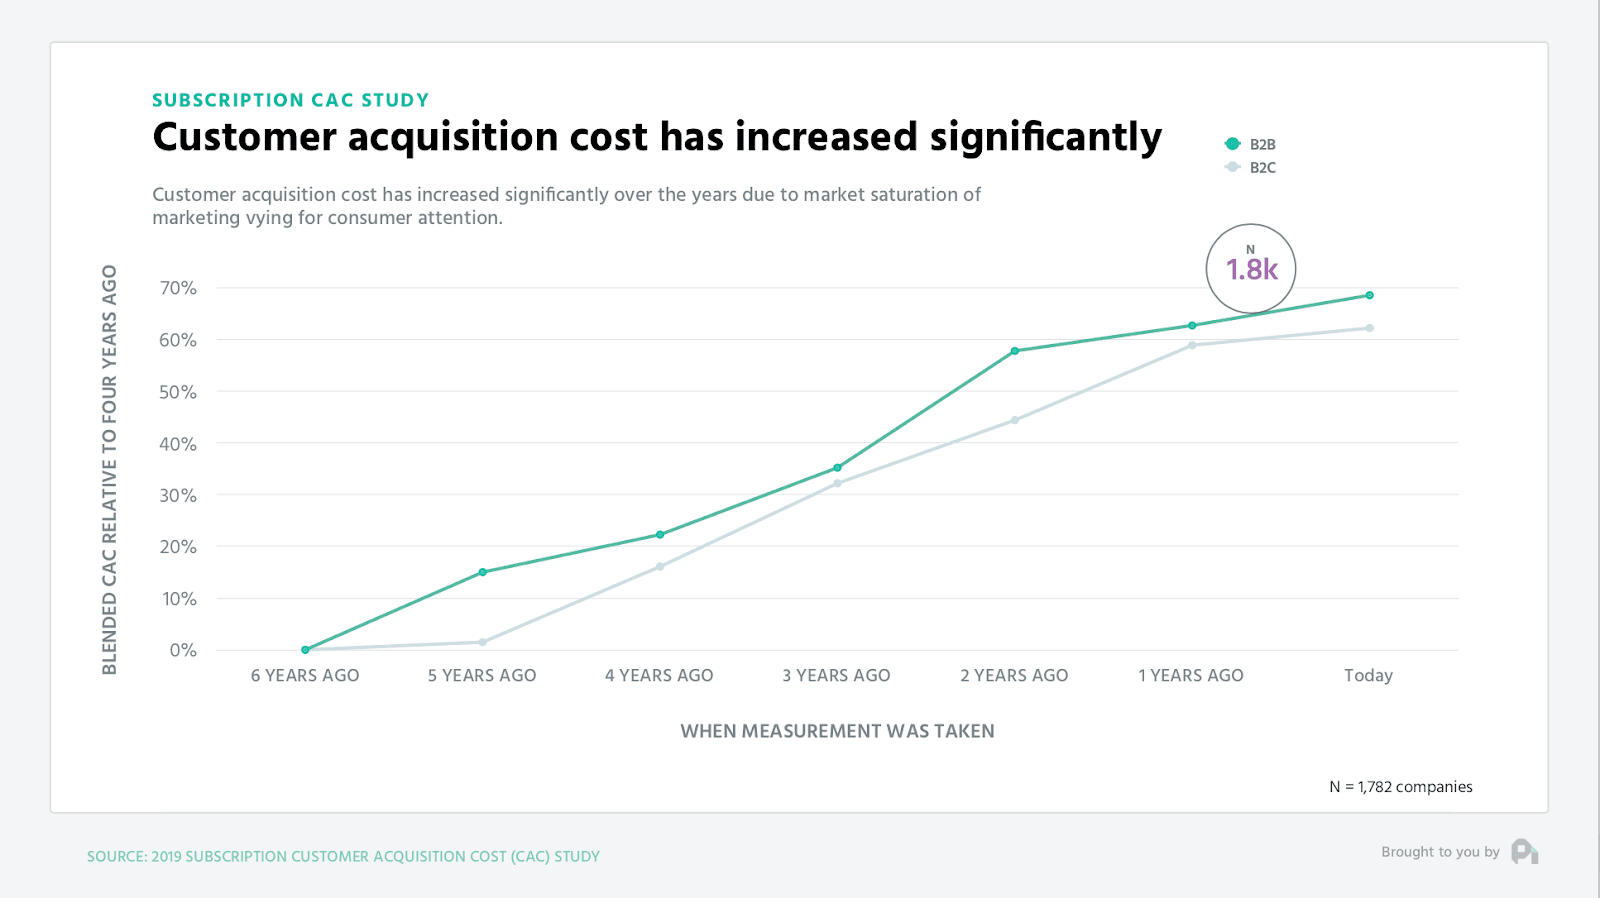 graph showing increased customer acquisition cost surged by 60% in 2019 compared to 6 years ago.